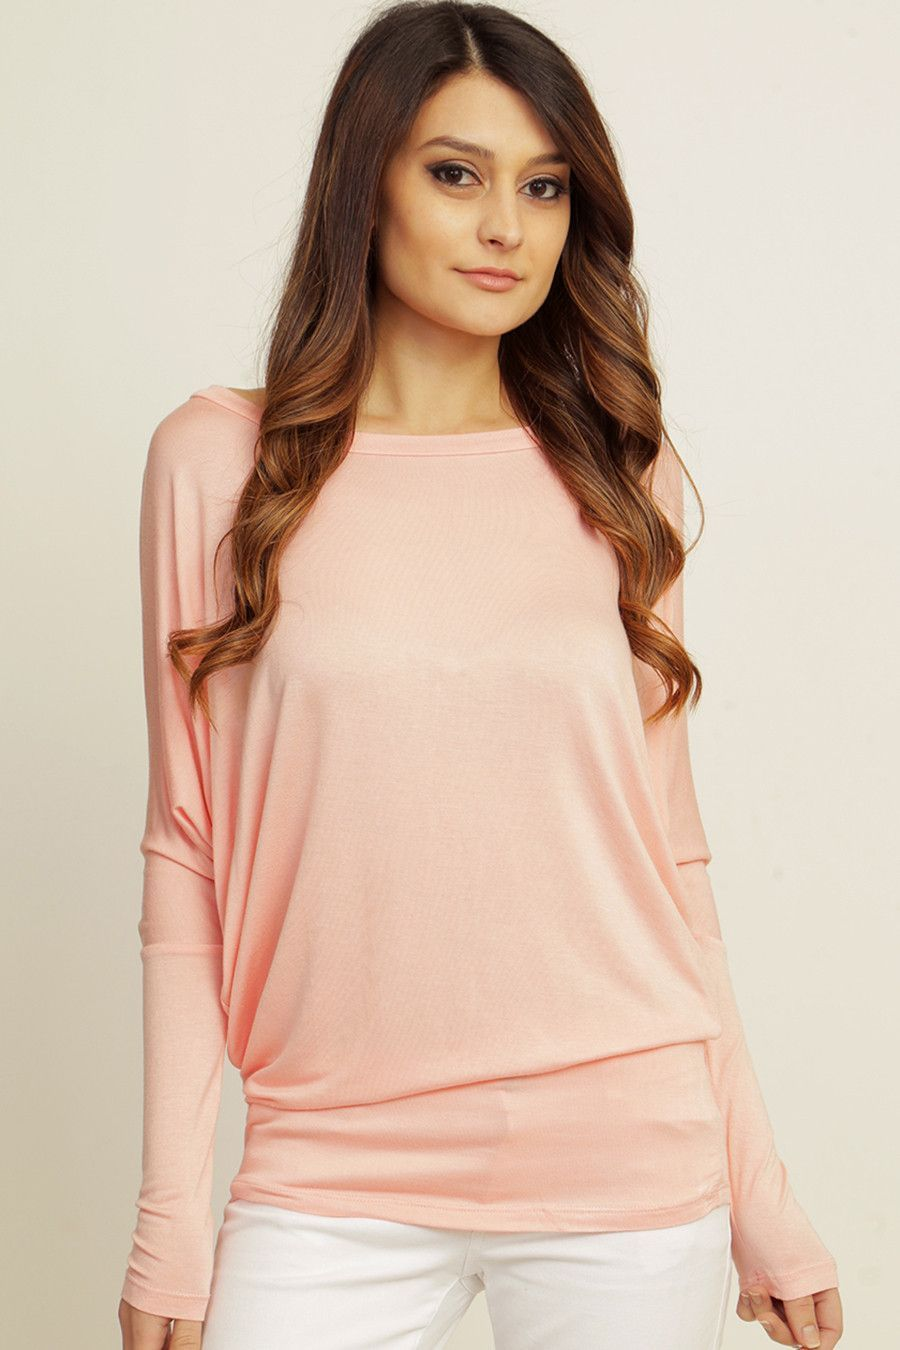 Women's Solid Dolman Sleeve Top Several Colors To Choose From